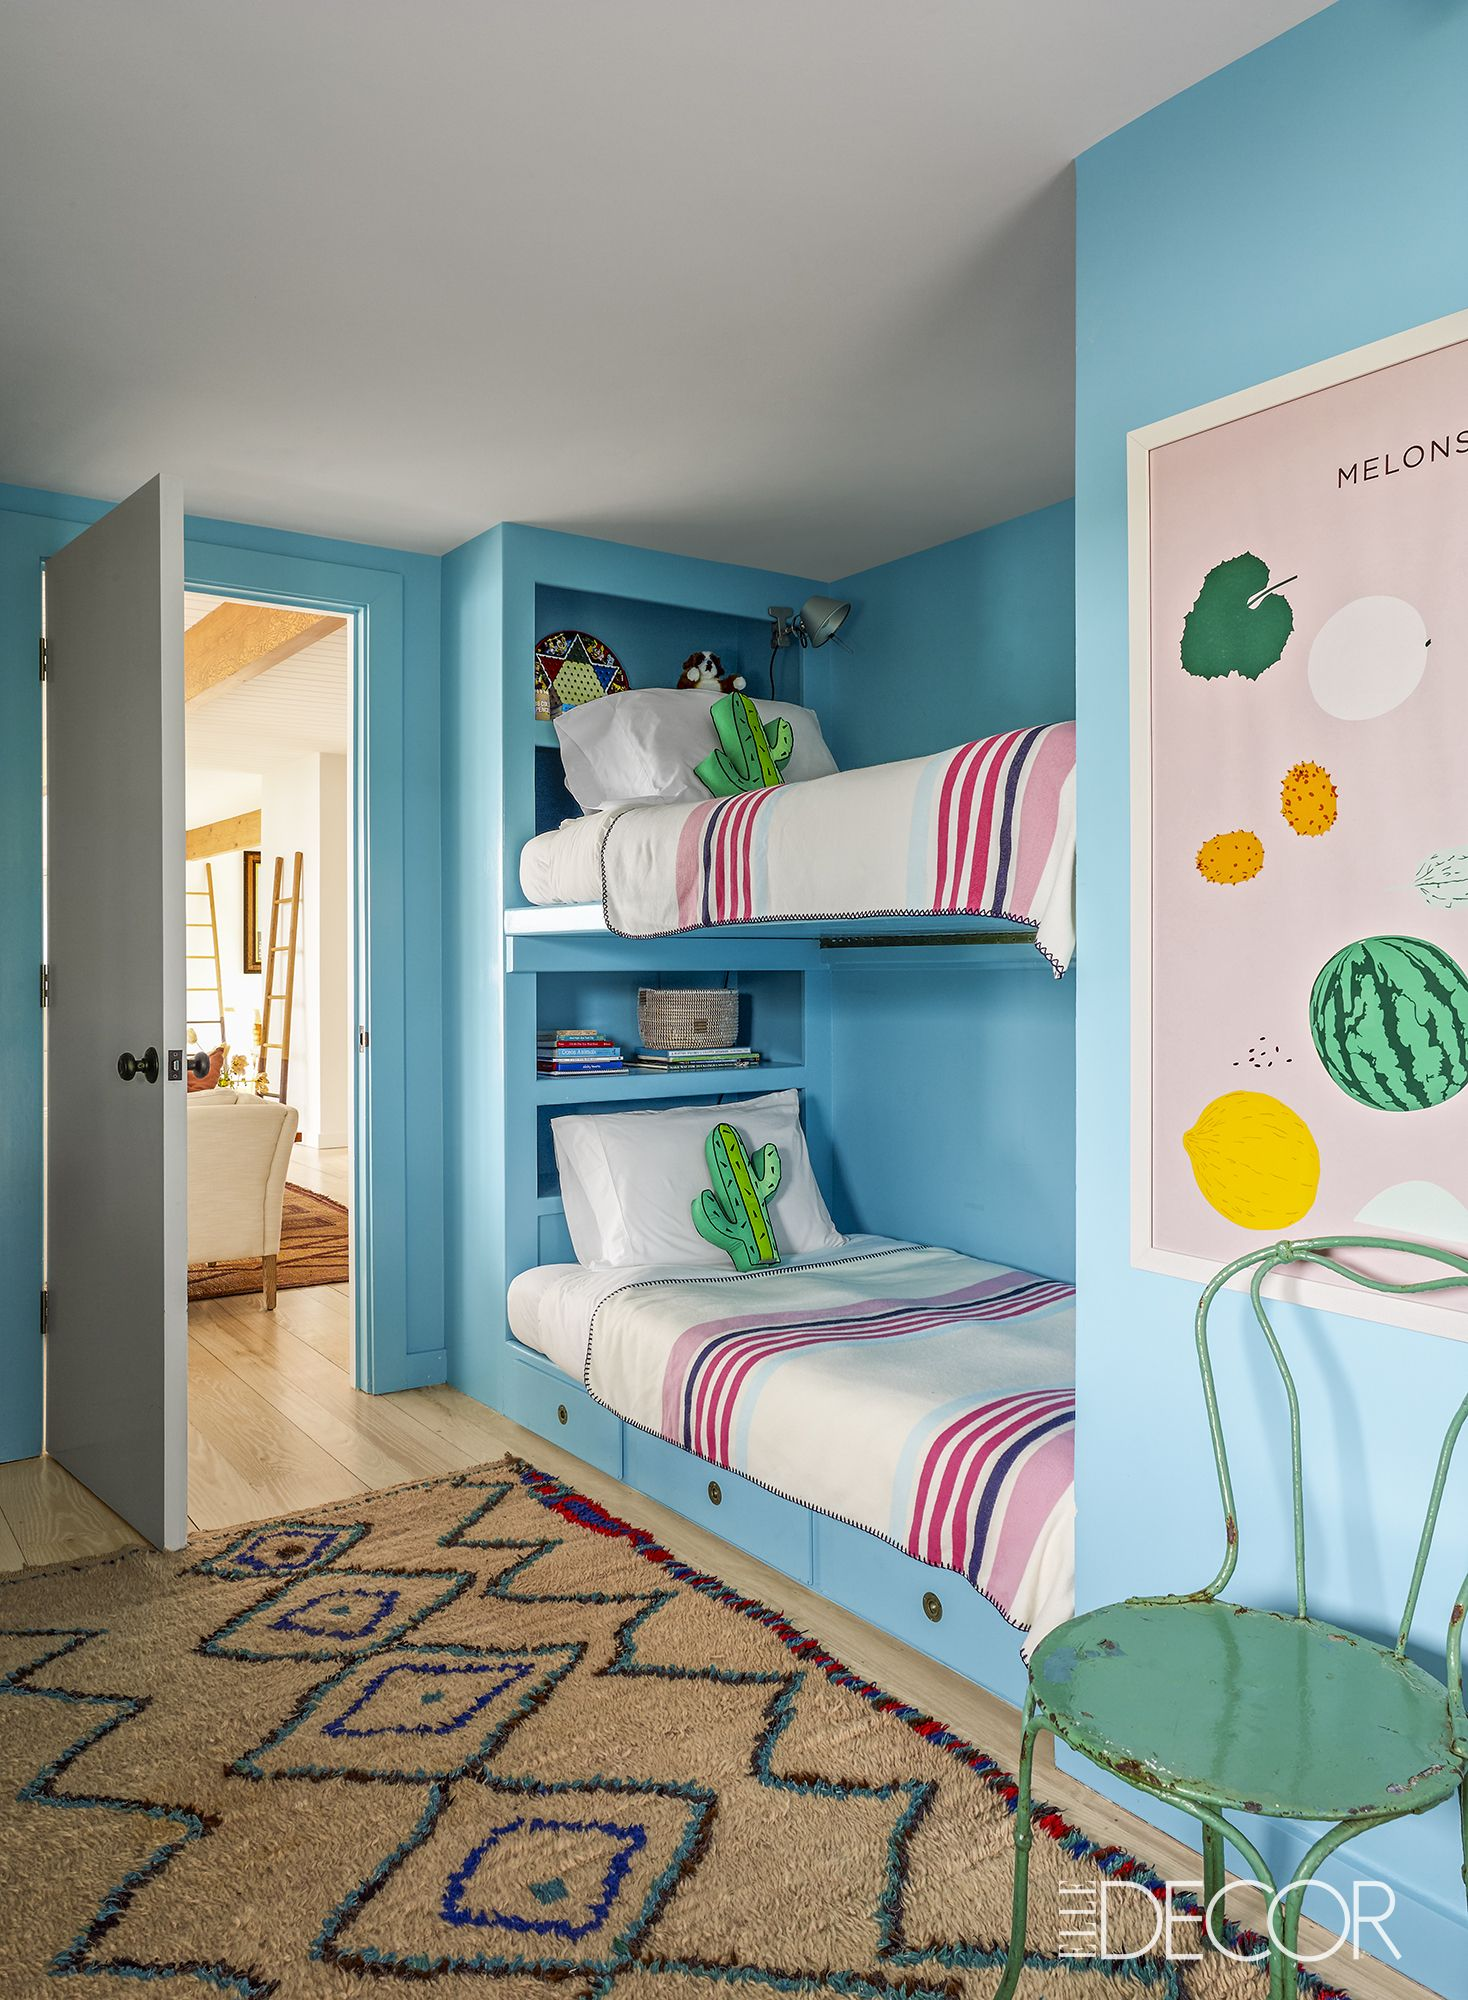 Unique Kid Rooms 25 Cool Kids Room Ideas How To Decorate A Child S Bedroom